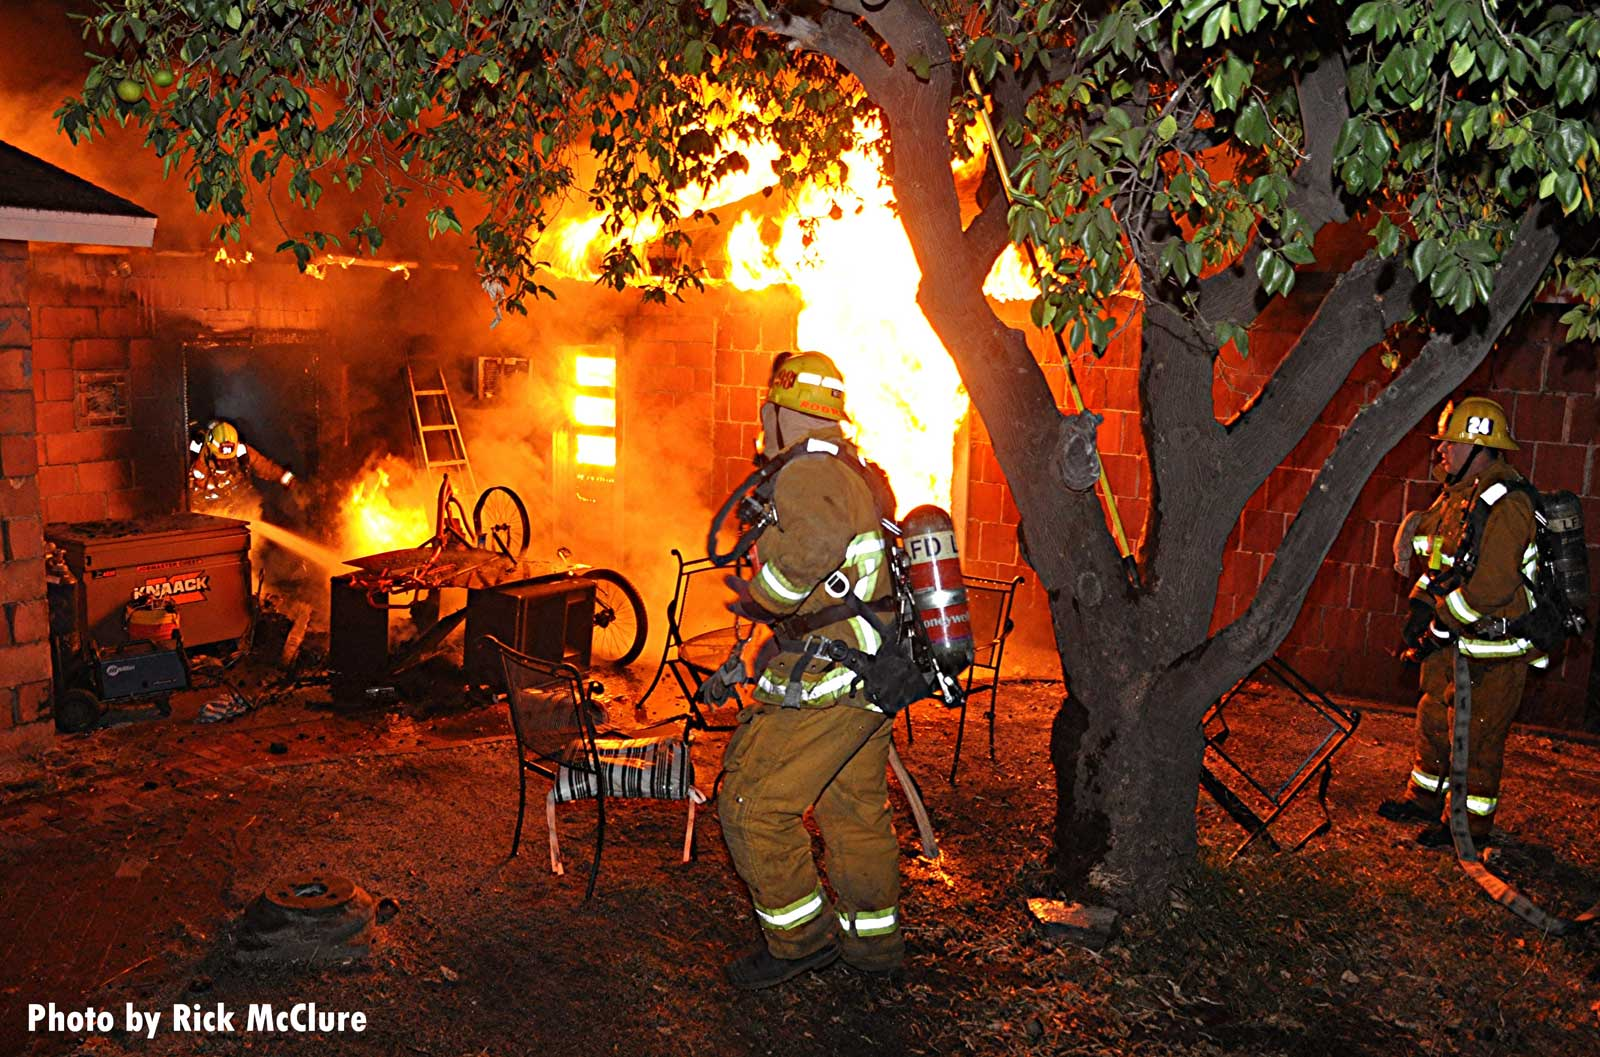 A firefighter framed by flames in Los Angeles